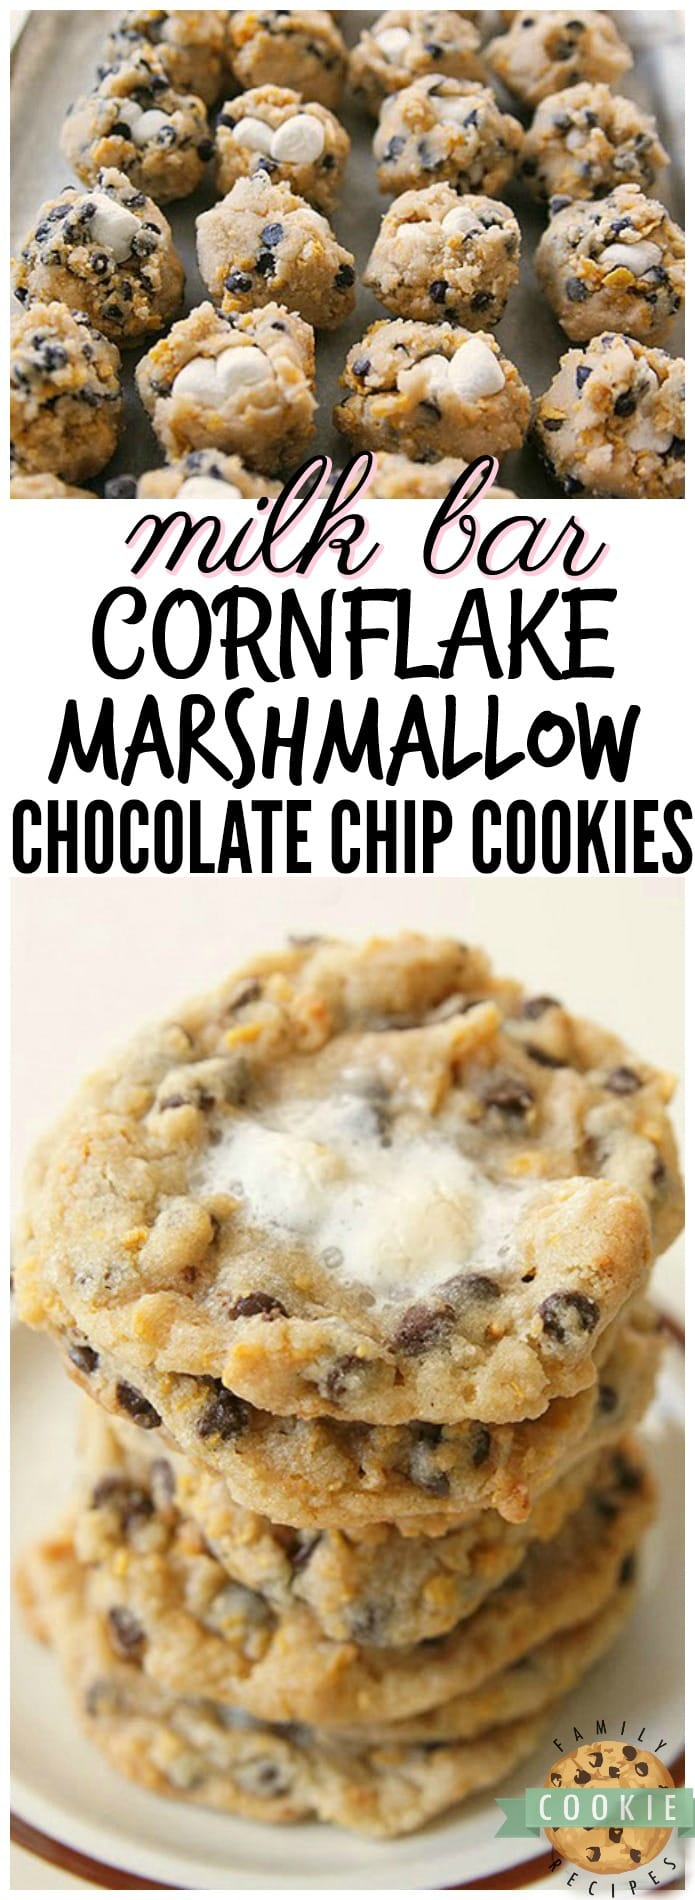 Milk Bar Cornflake Marshmallow Cookies just like the ones served in Momofuku Milk Bar in NYC! I think my version is even BETTER...and they're easier to make! See my tips and tricks on making these incredible cornflake chocolate chip cookies in your own kitchen. via @familycookierecipes